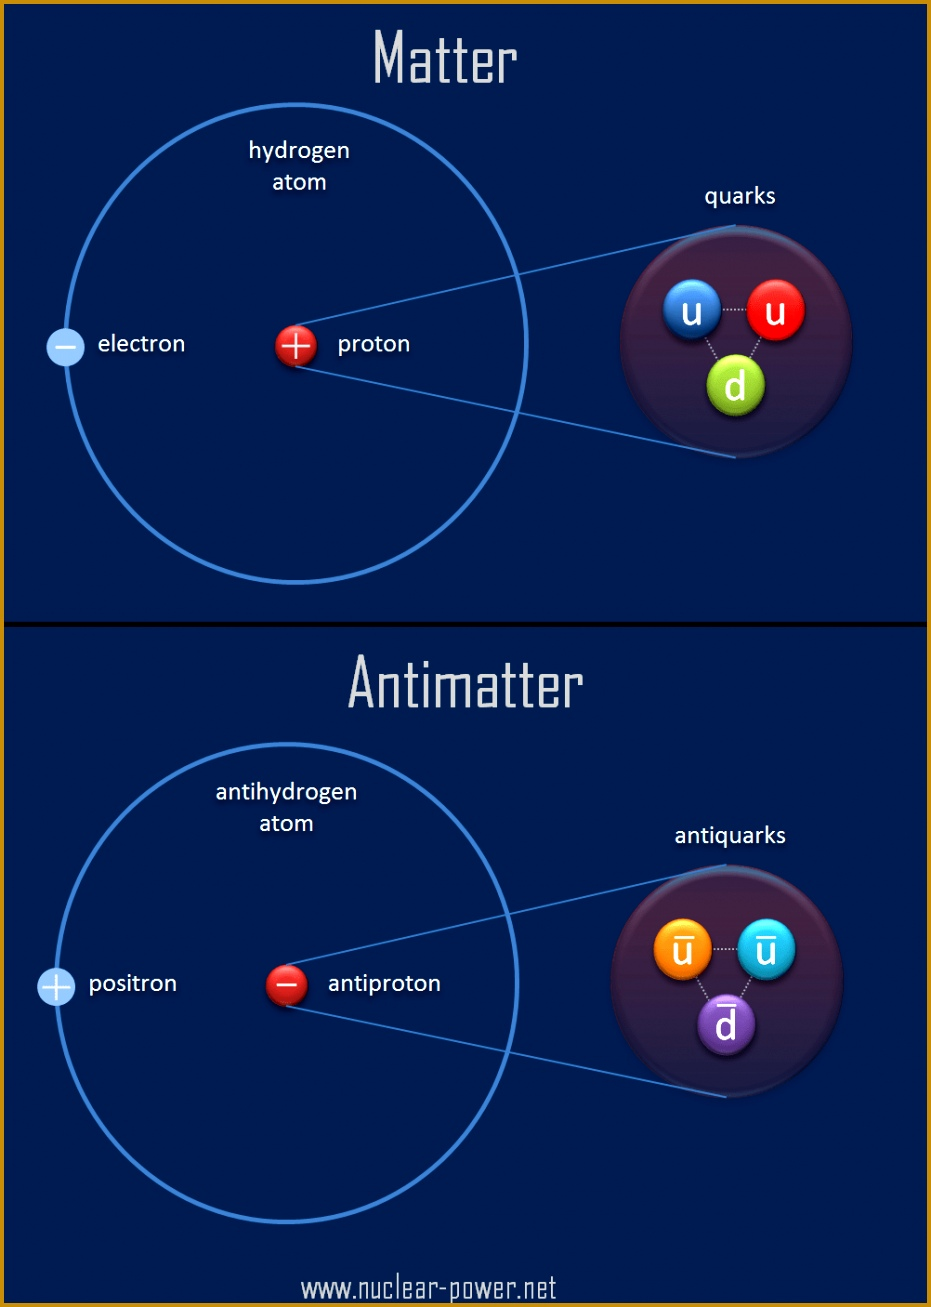 Matter and Antimatter parison 1307931